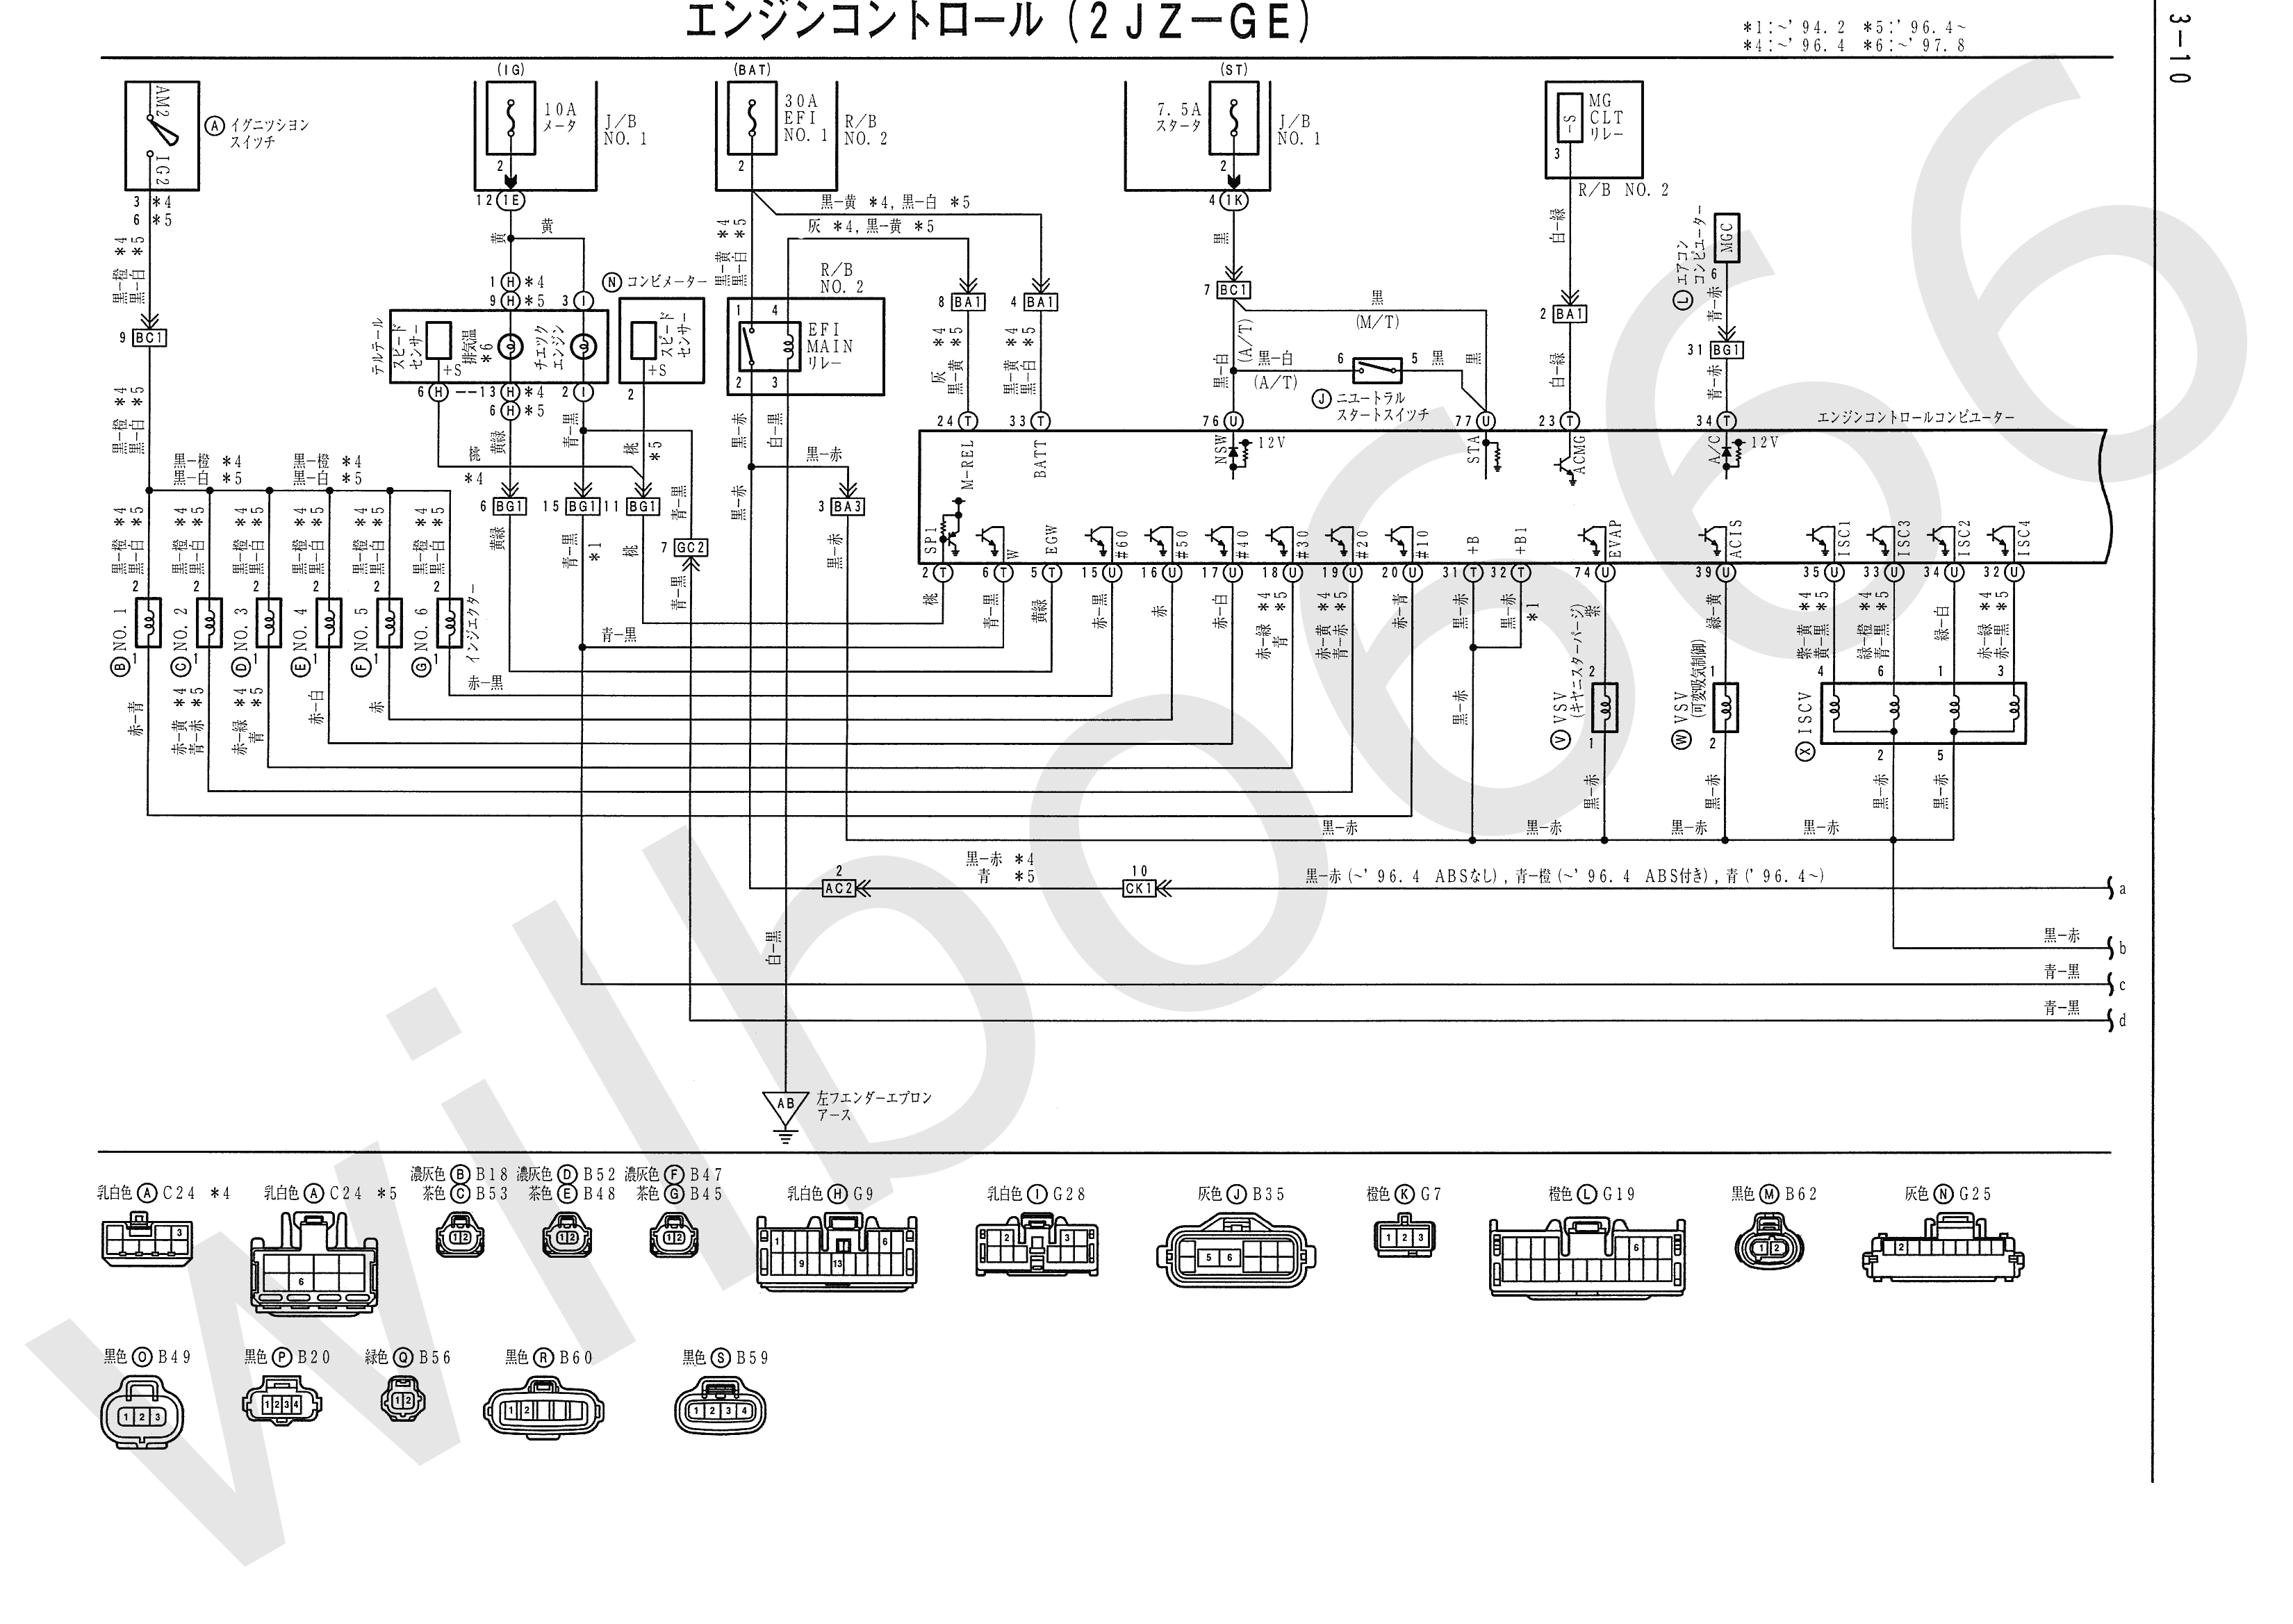 8 pin relay wiring diagram 8 discover your wiring diagram 2jz ge 20jza80 20supra 20engine 20wiring